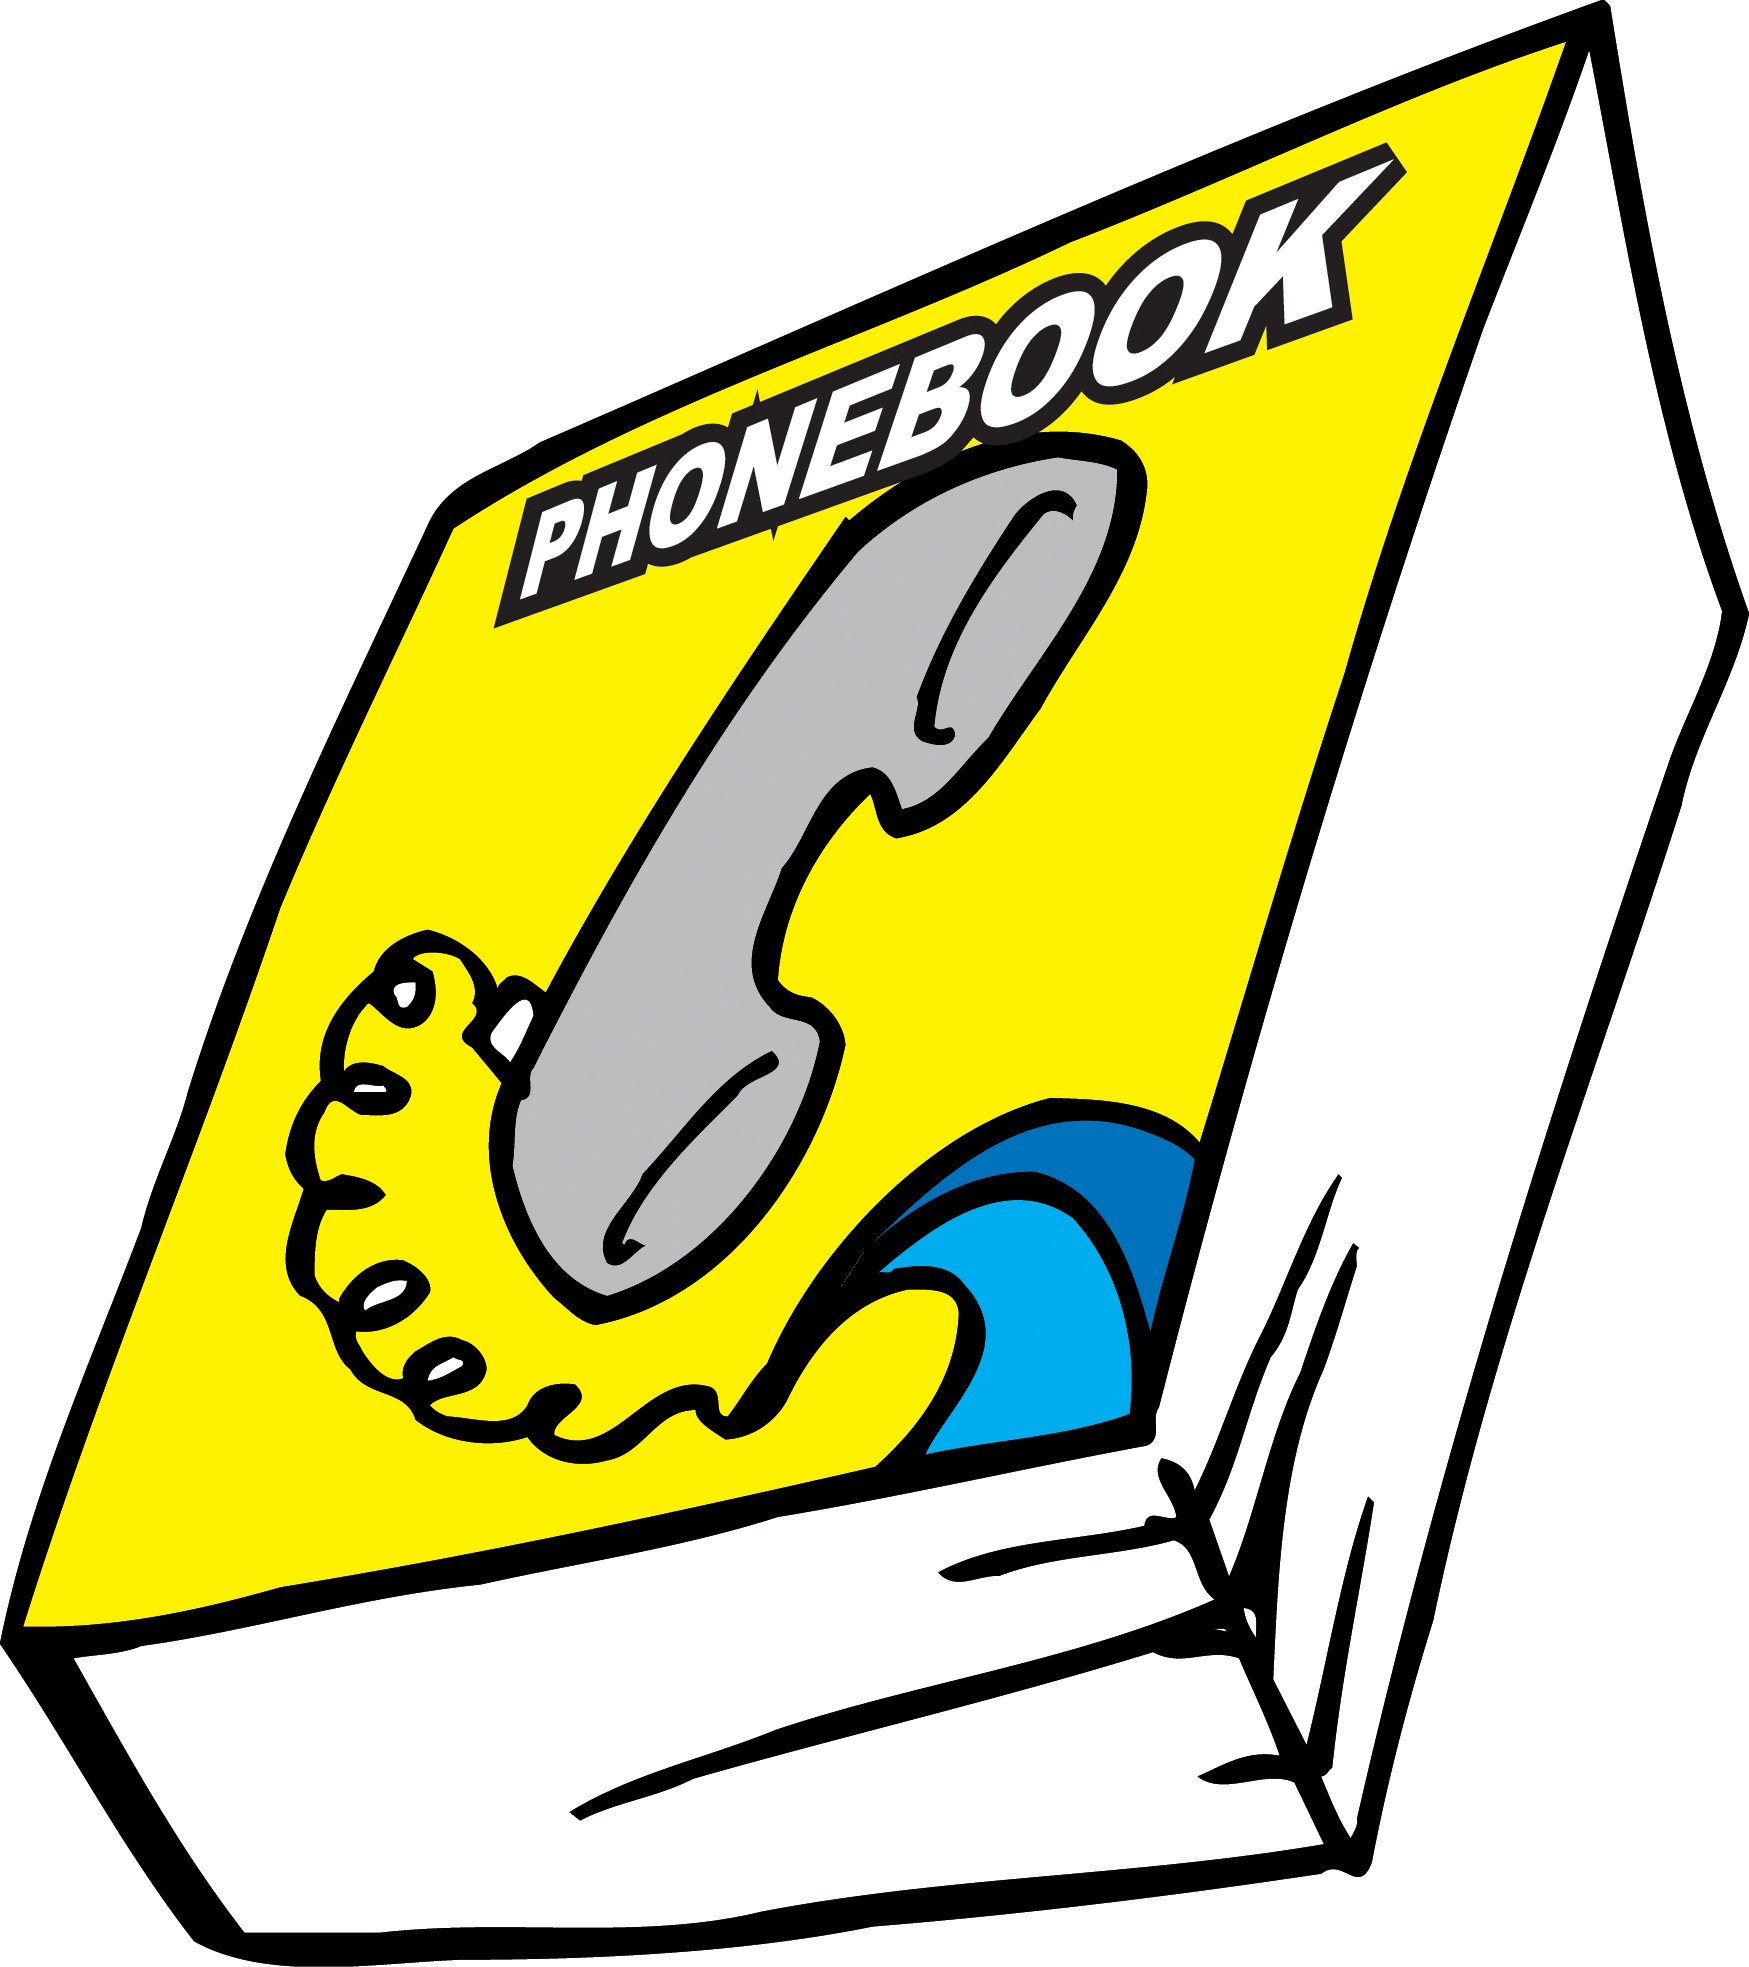 Phone Book Clipart - Clipart Kid